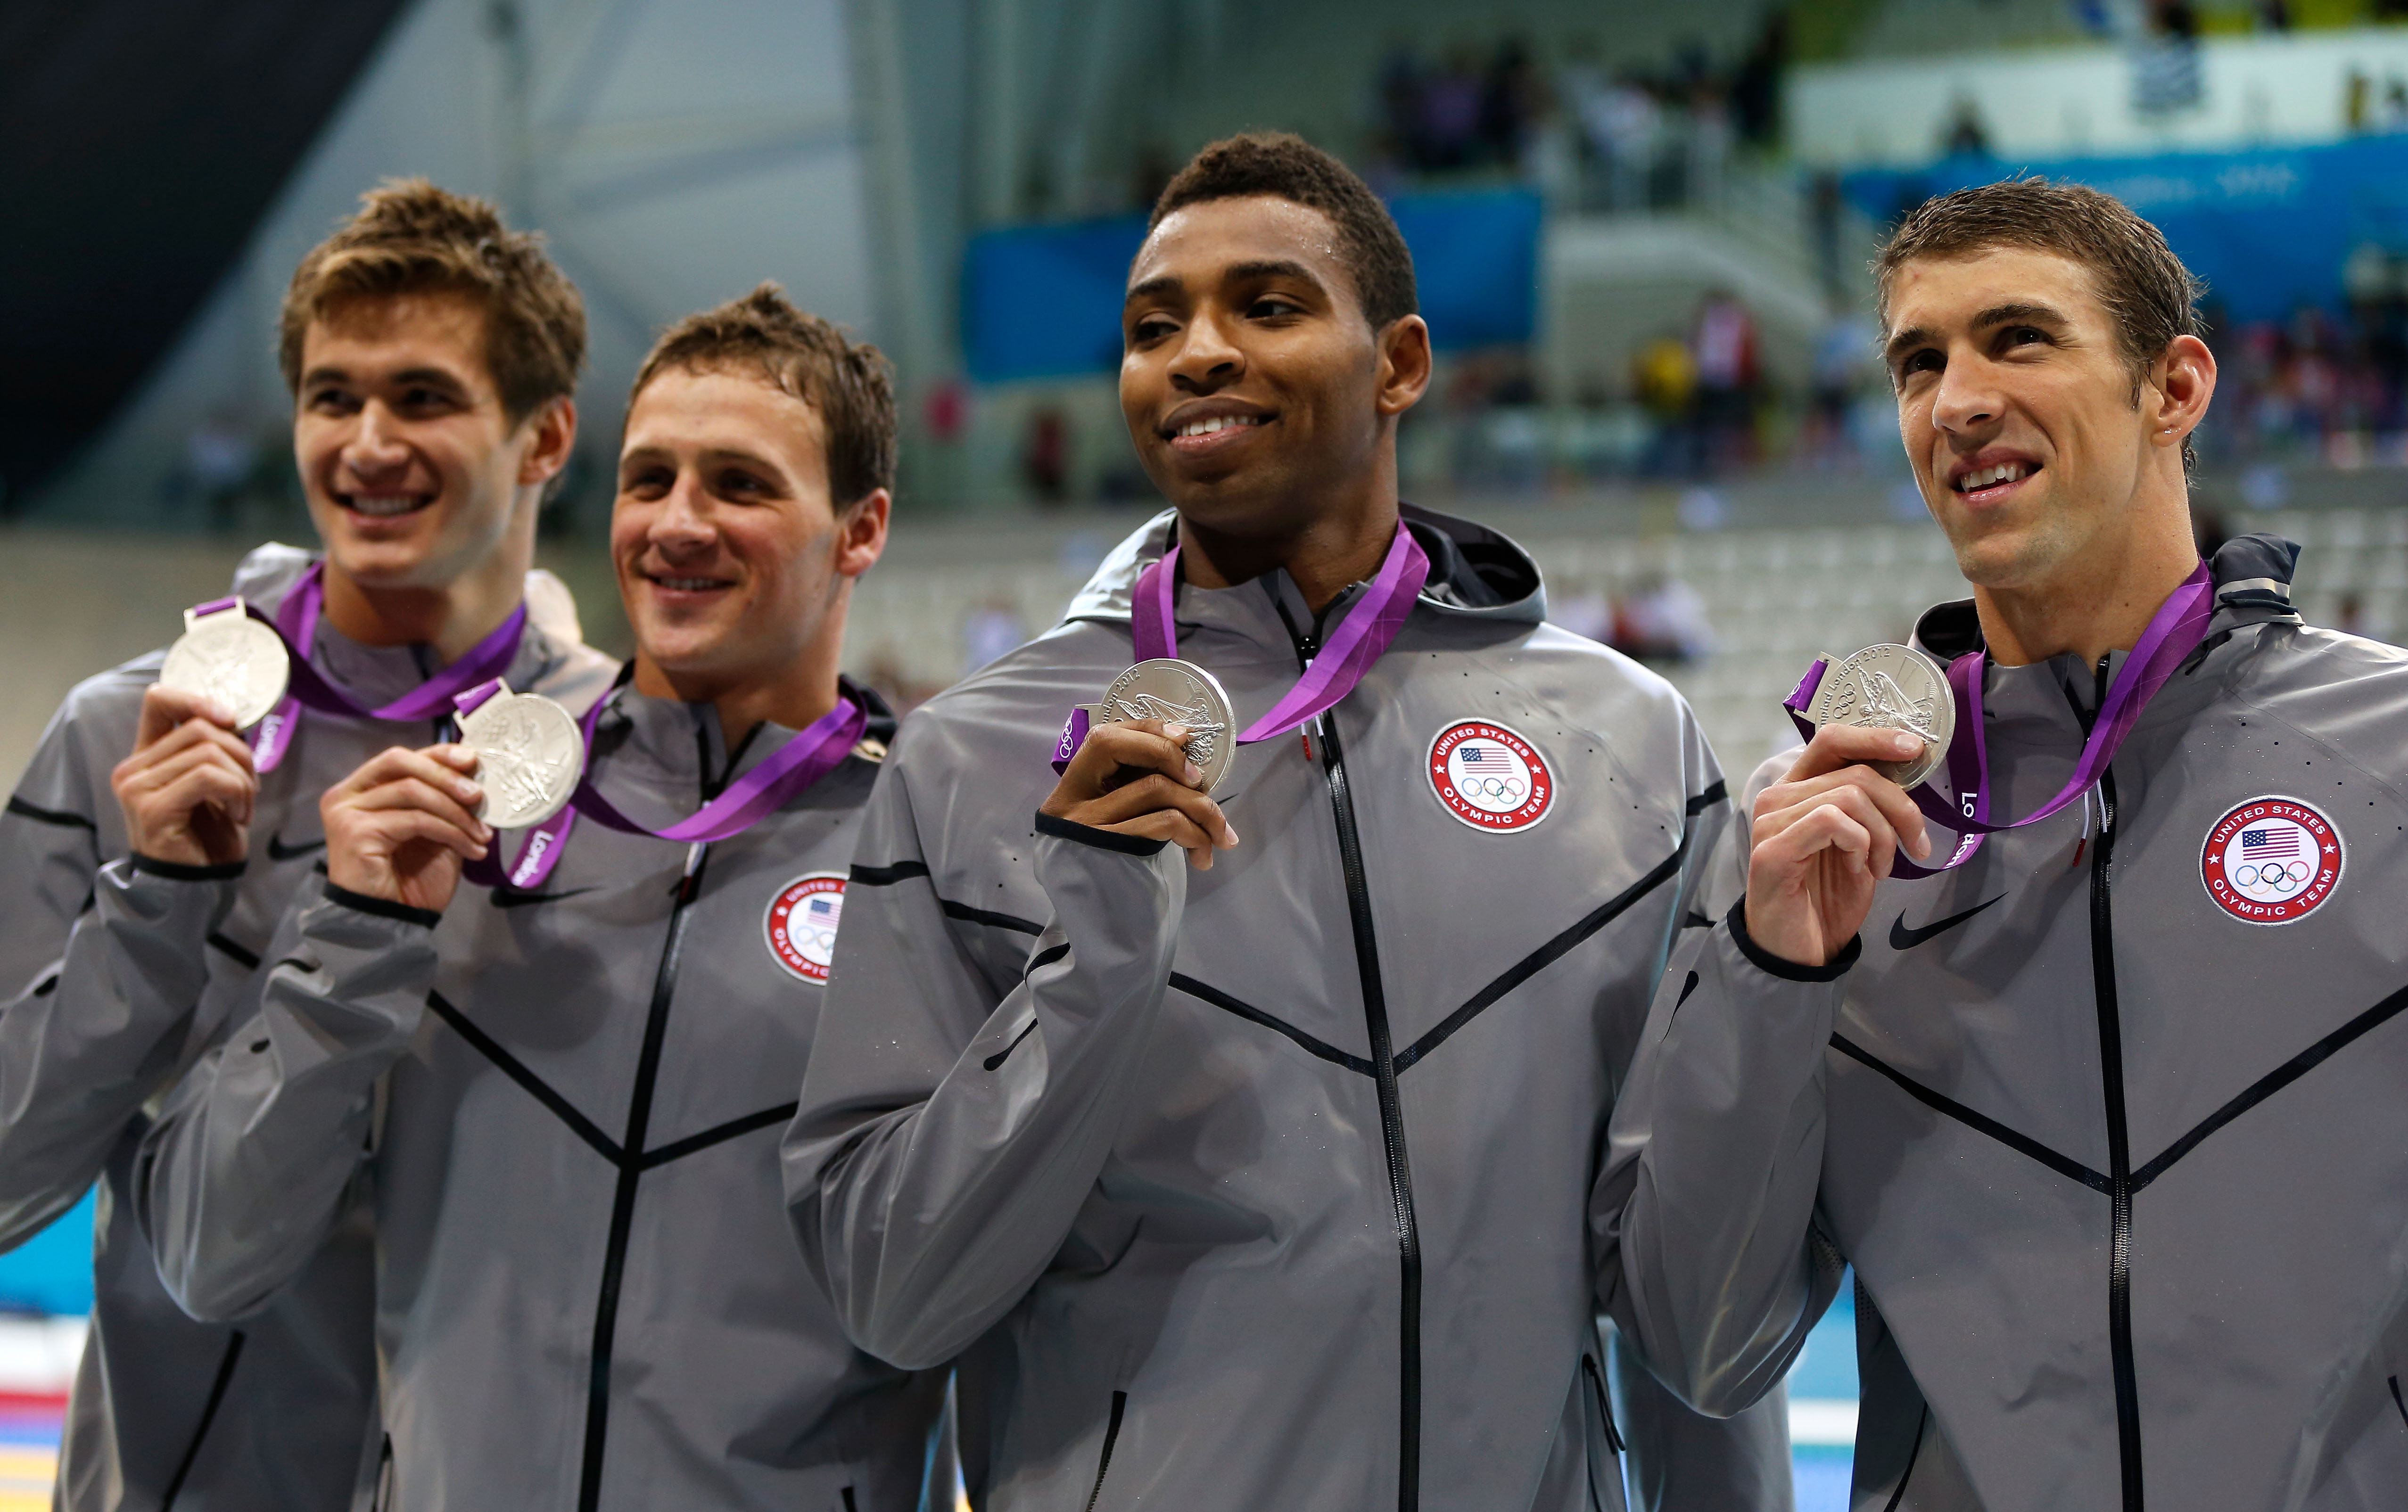 Cullen Jones poses with team-mates, from left, Adrian Nathan, Ryan Lochte,  and Michael Phelps with the silver medals won for the Men's 4 x 100m Freestyle Relay final during the London 2012 Olympic Games